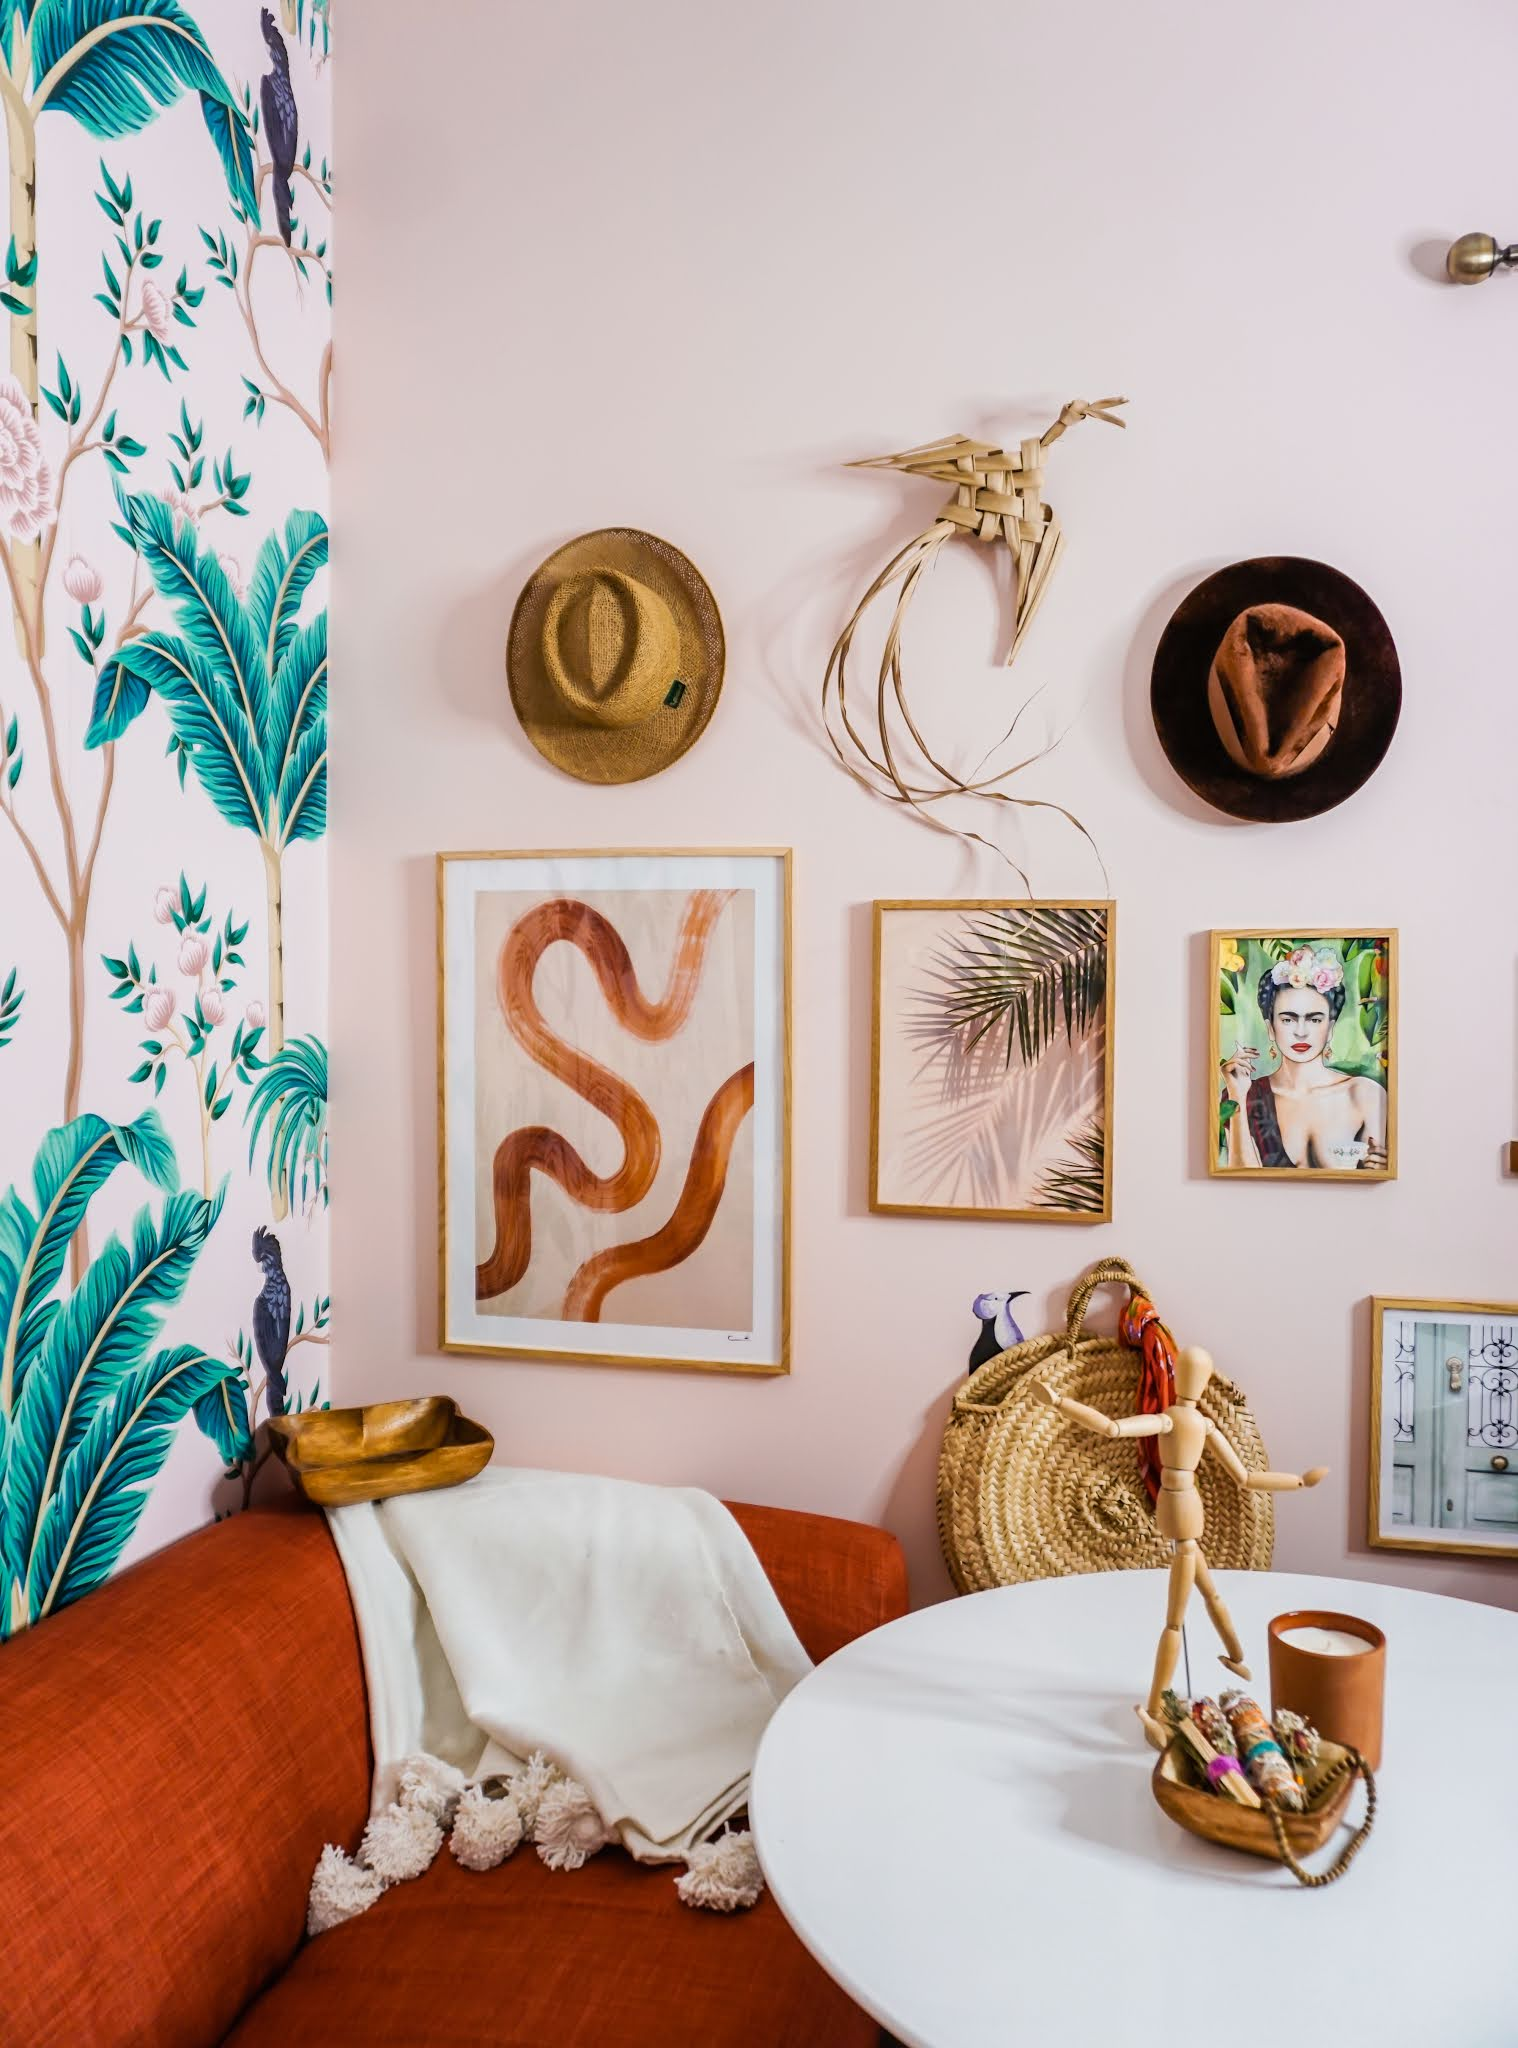 Chinoiserie office // how to brighten room with a mural // how to brighten room with wallpaper // office inspiration // boho office ideas // Chinoiserie office // pink Chinoiserie // pink tropical office inspo // removable murals // limitless walls mural review // rust and pink decor // boho Chinoiserie decor // pink and burnt orange  decor inspo // tropical bird wallpaper // tropical birds mural // boho gallery wall // Frida gallery wall // Frida Kahlo print // boho prints // boho office decor // light pink tropical office // light pink room // Clare baby soft